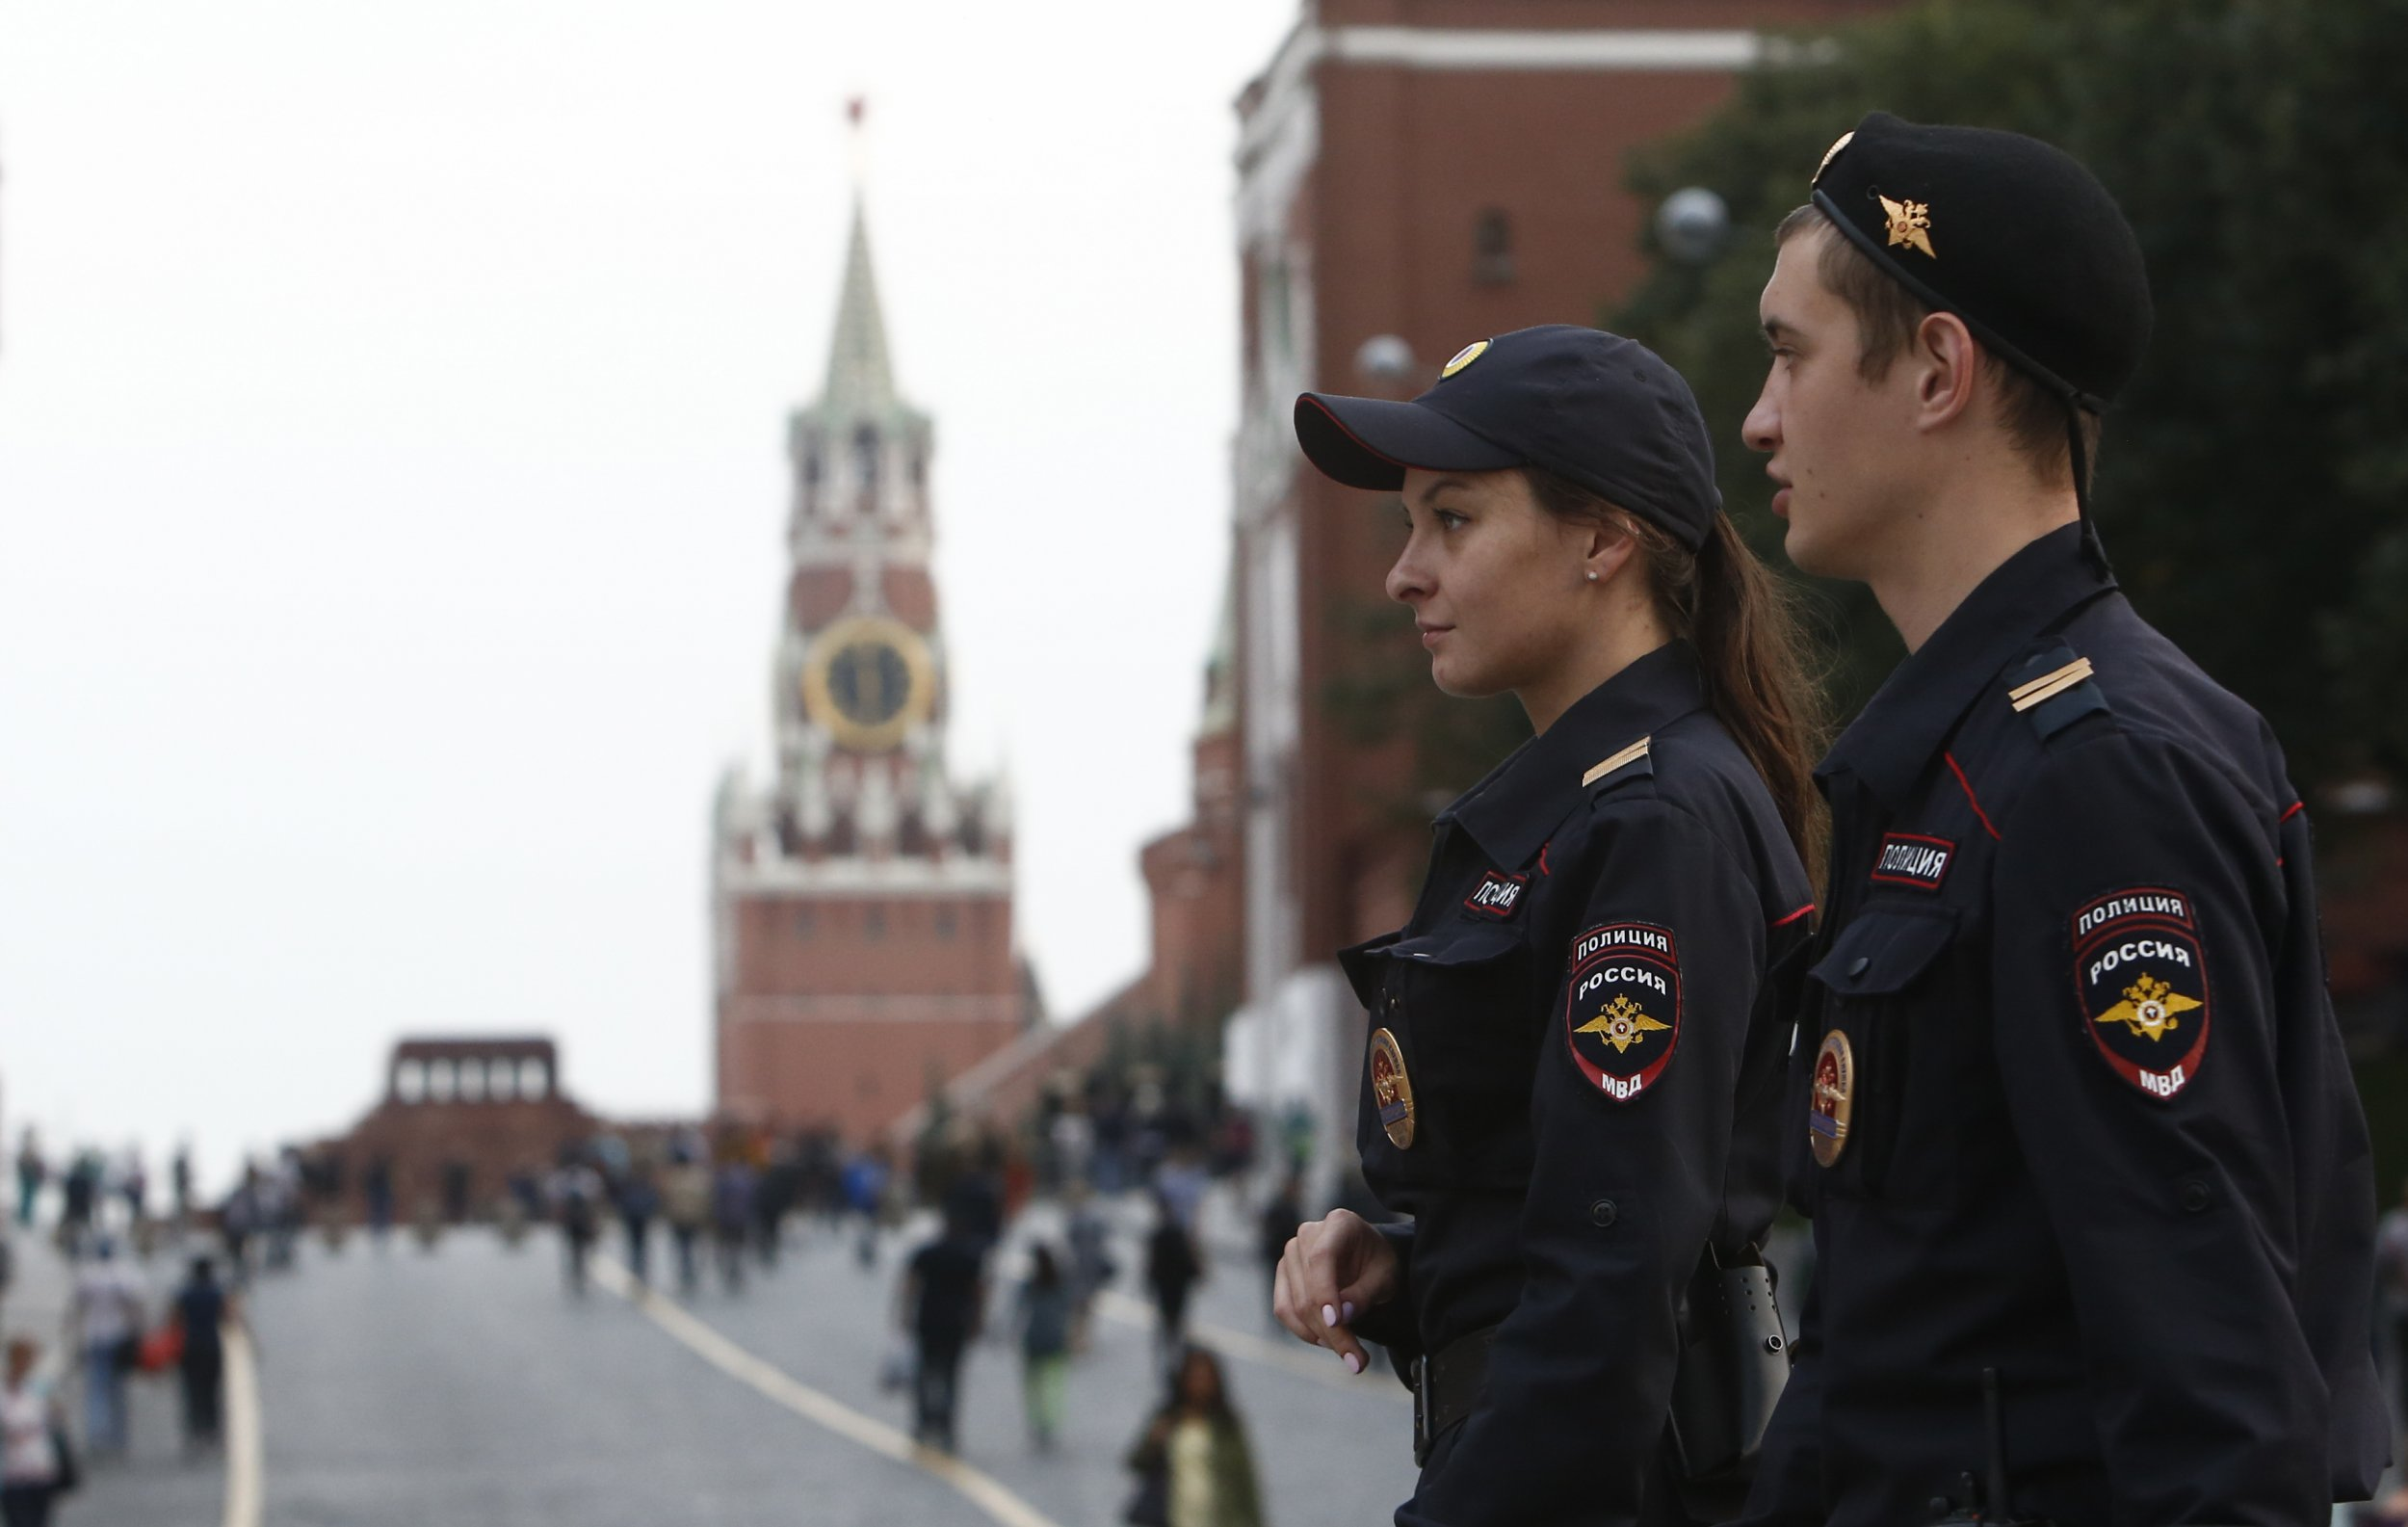 Red Square police